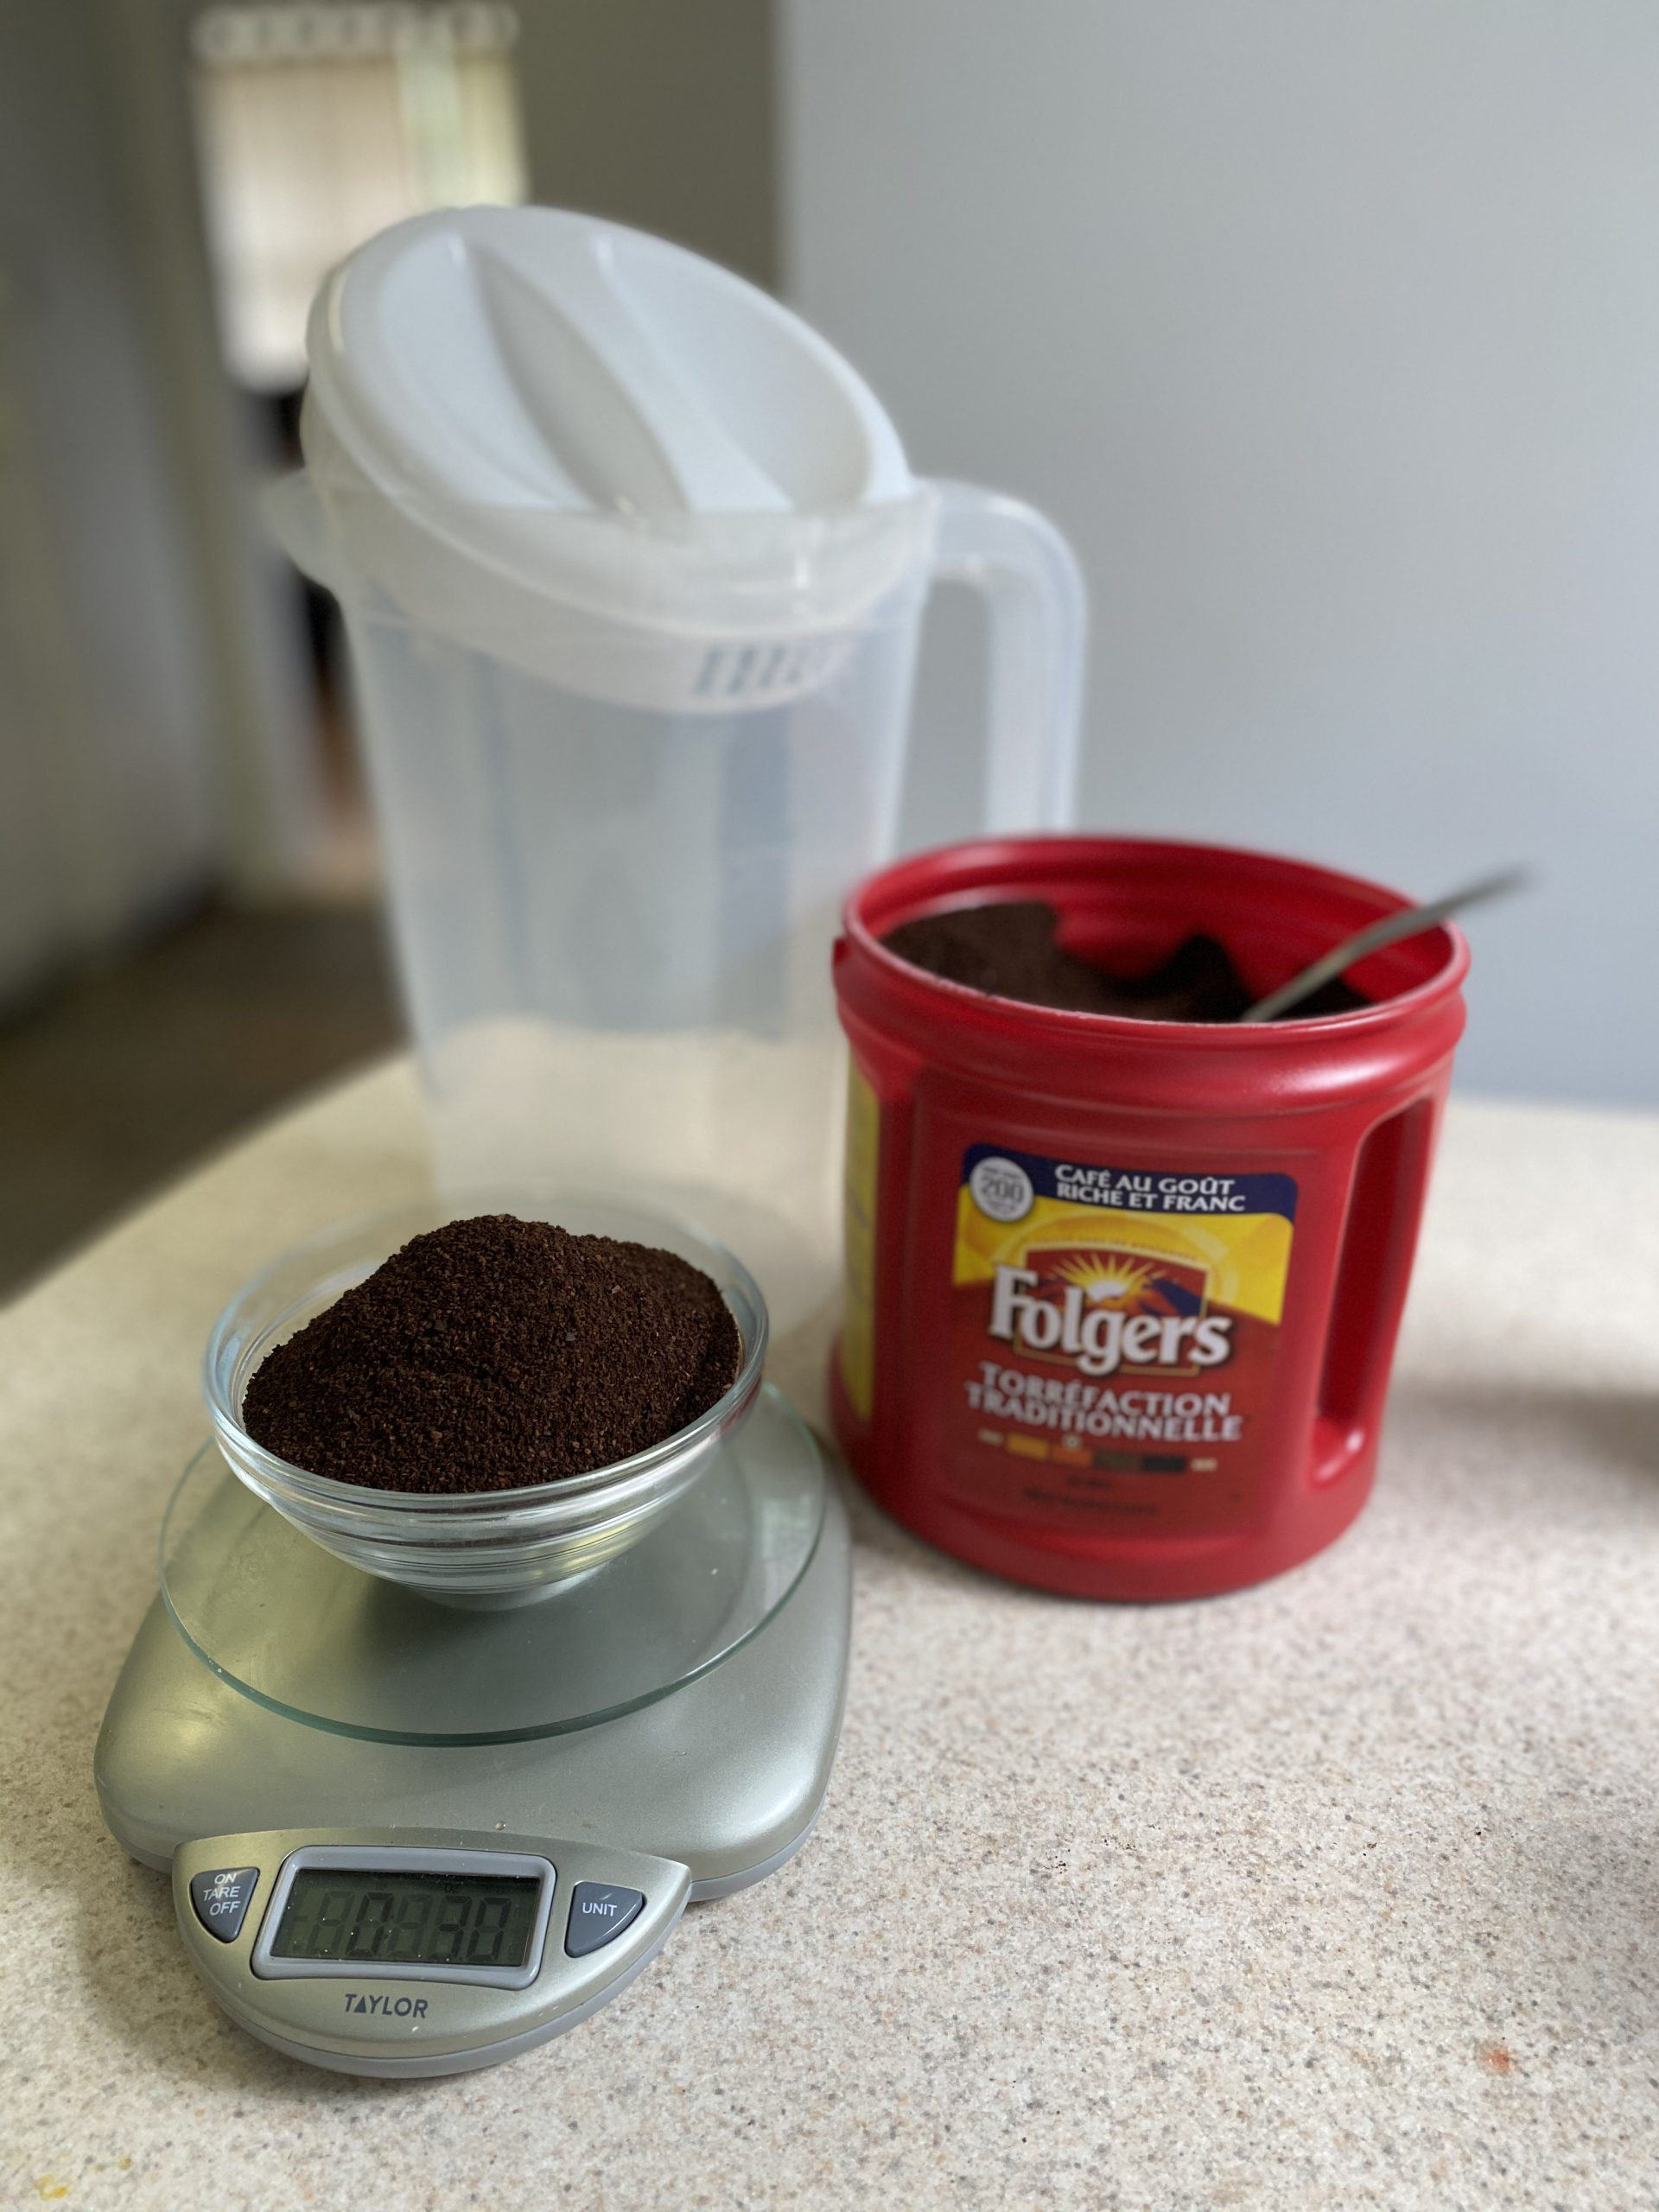 All of the ingredients for a cold brew coffee recipe being weighed out on a scale. A container of Folger's is in the background